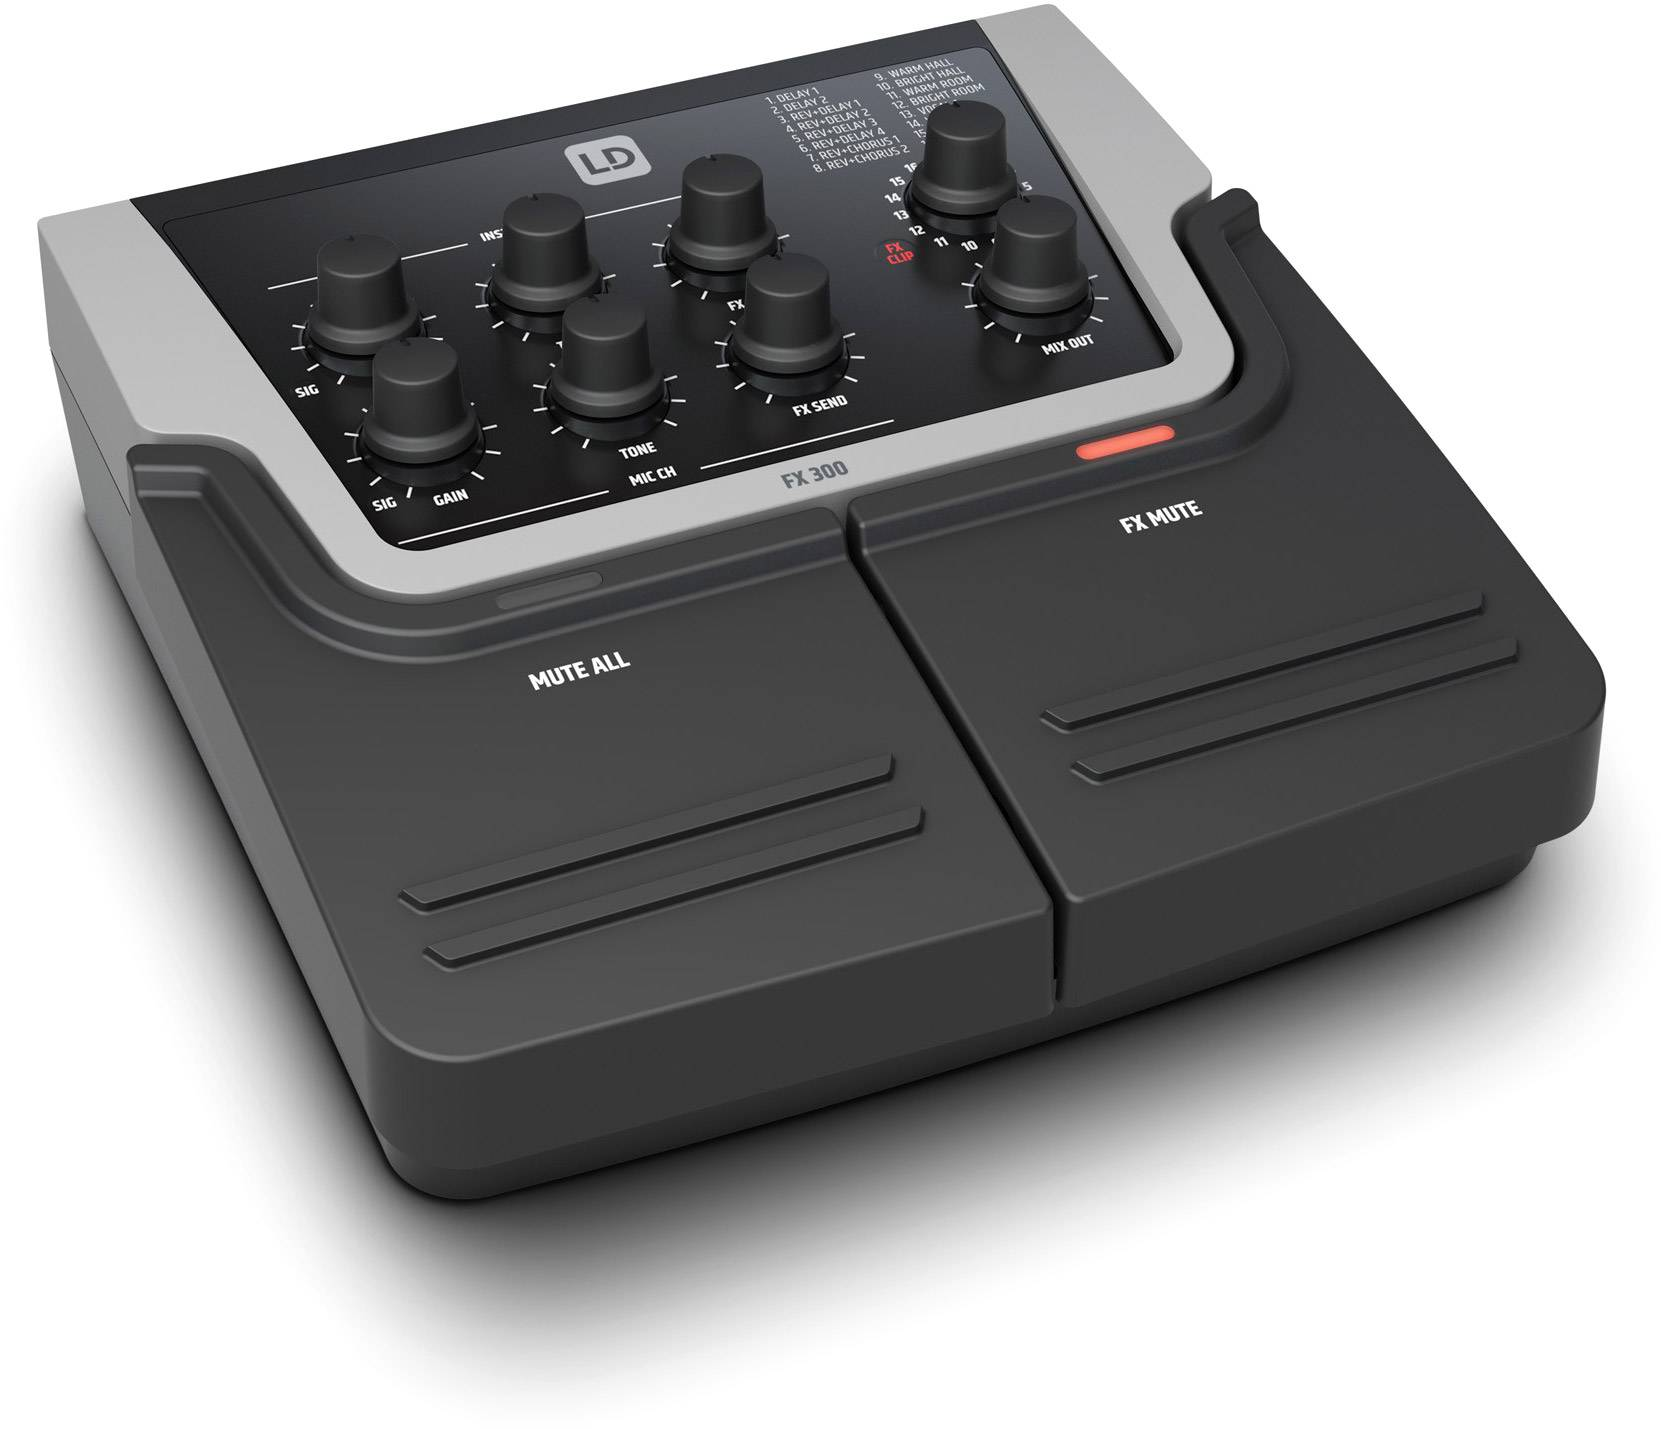 LD Systems FX 300 2-Channel Pedal with 16 Digital Effects - Miscellaneous accessories